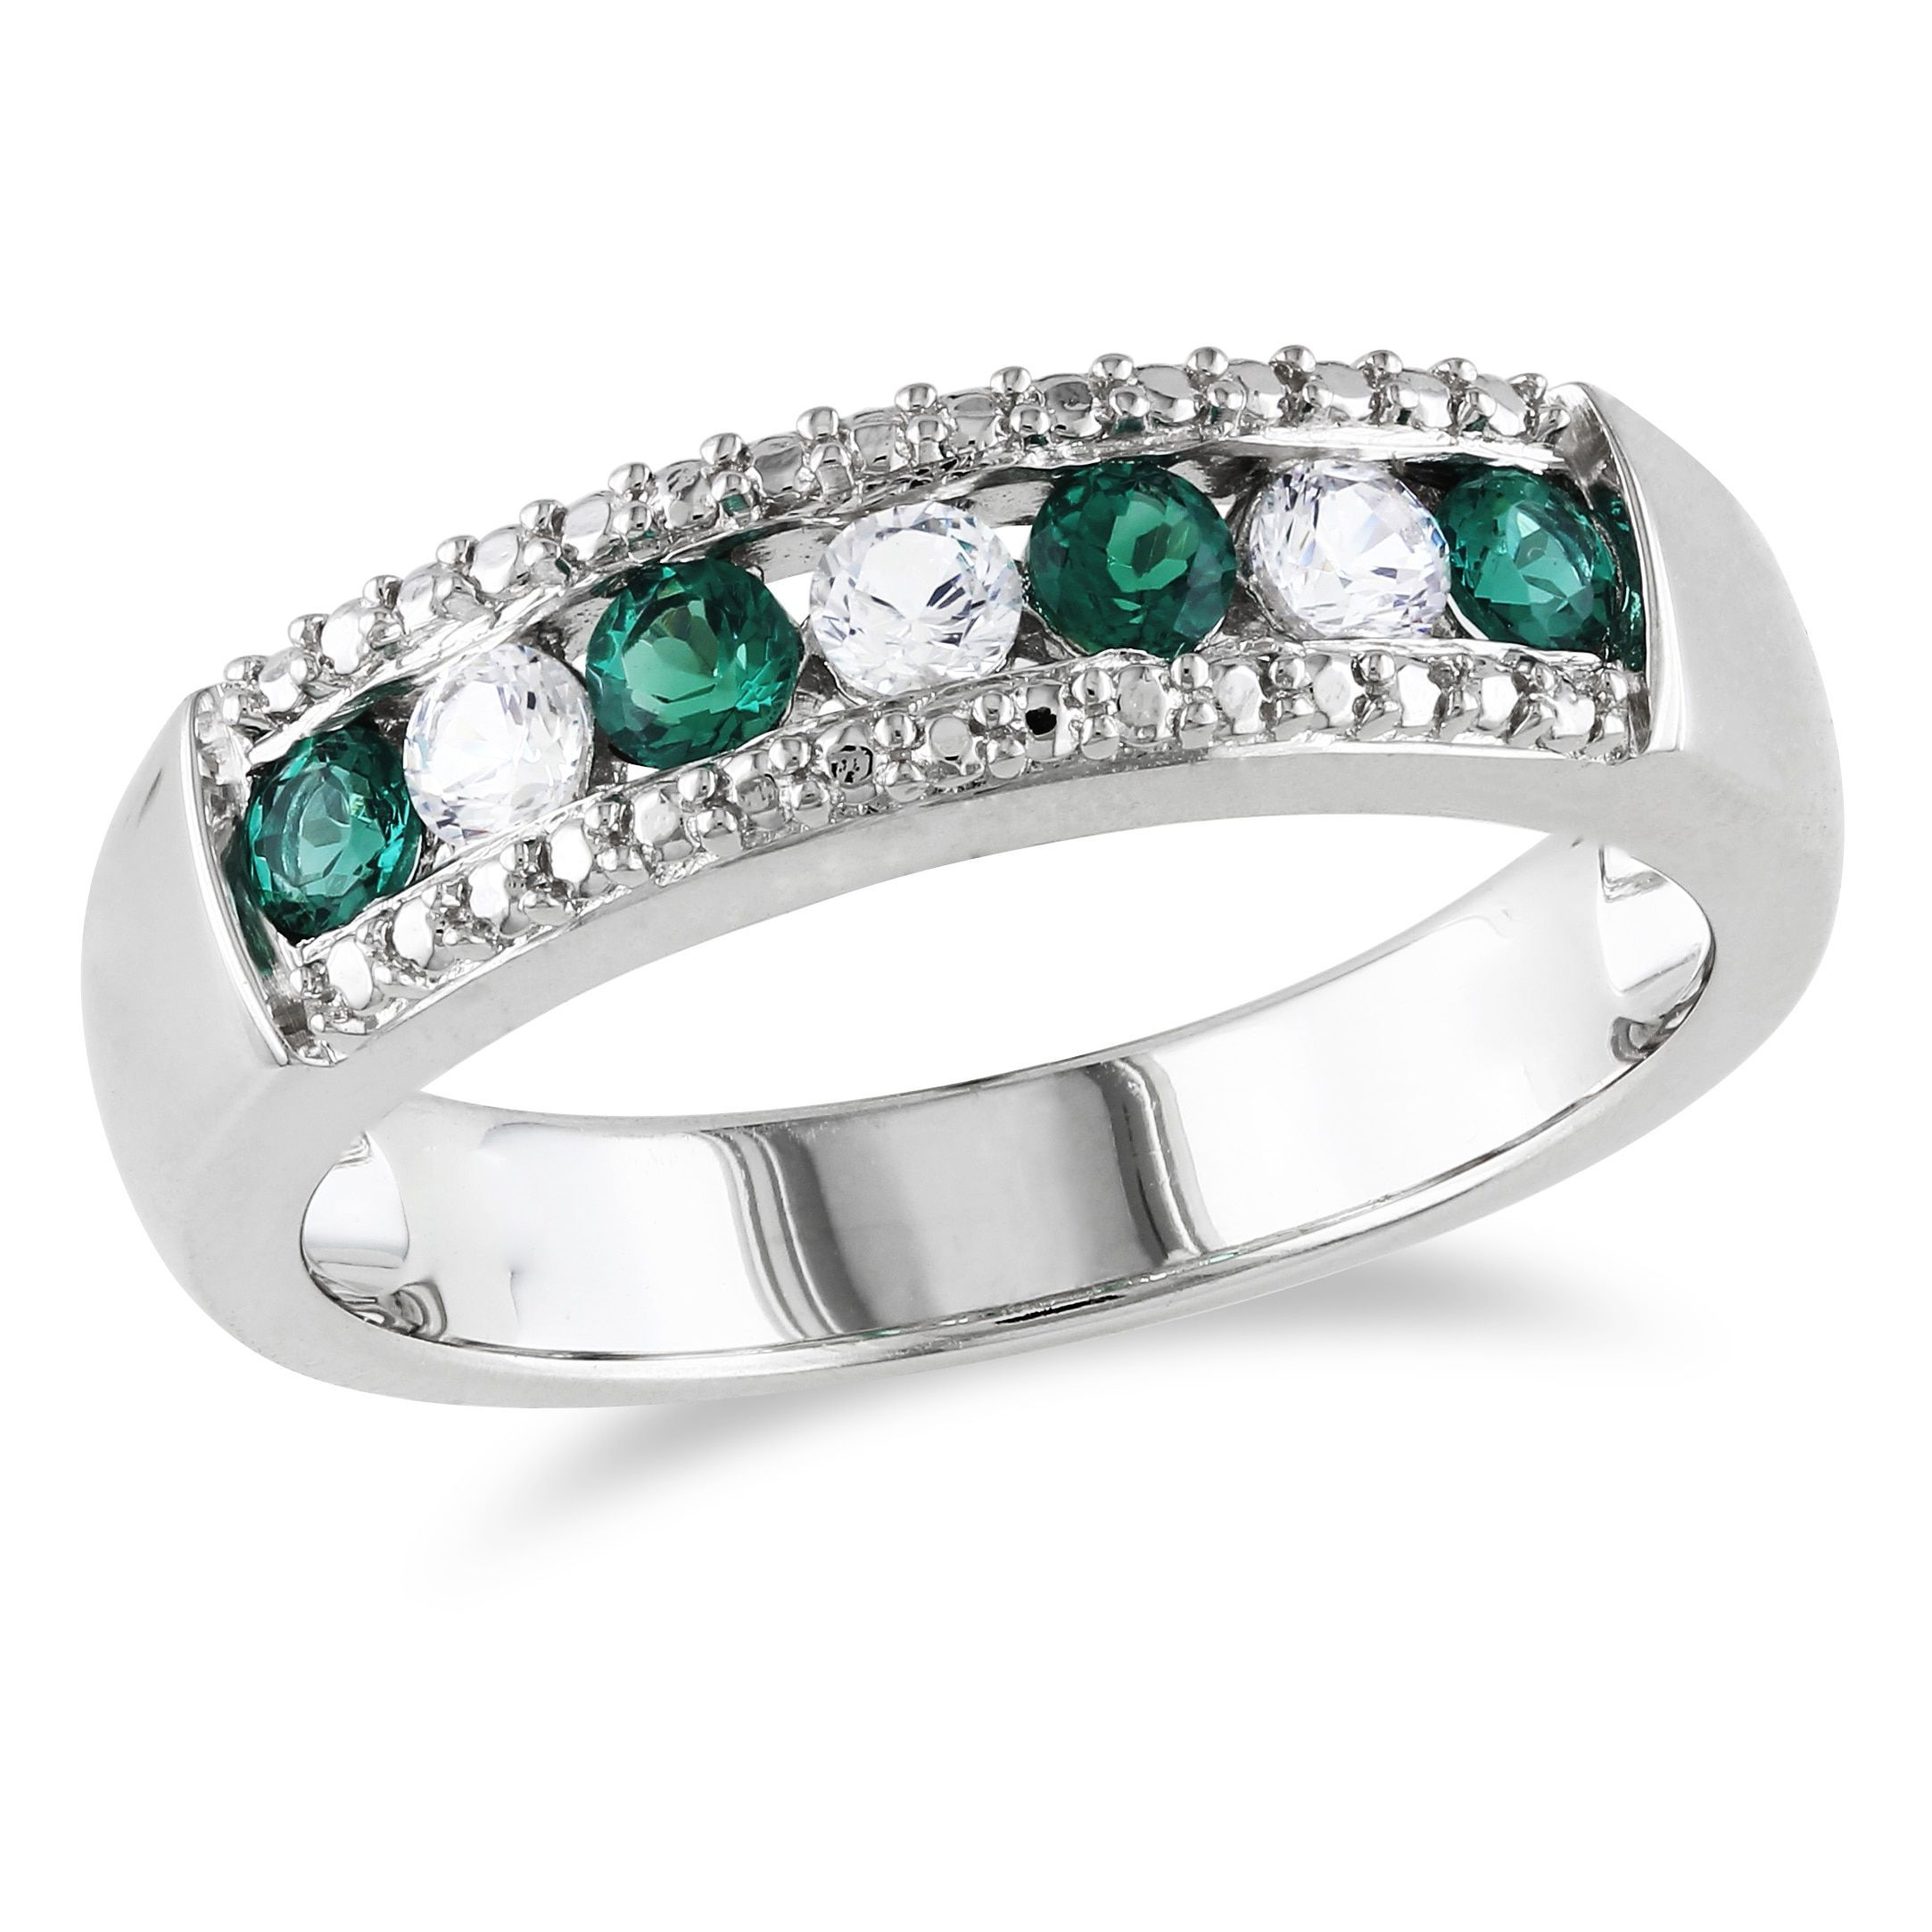 emerald side of concierge trapezoid cut stone ring wedding engagement fresh diamond